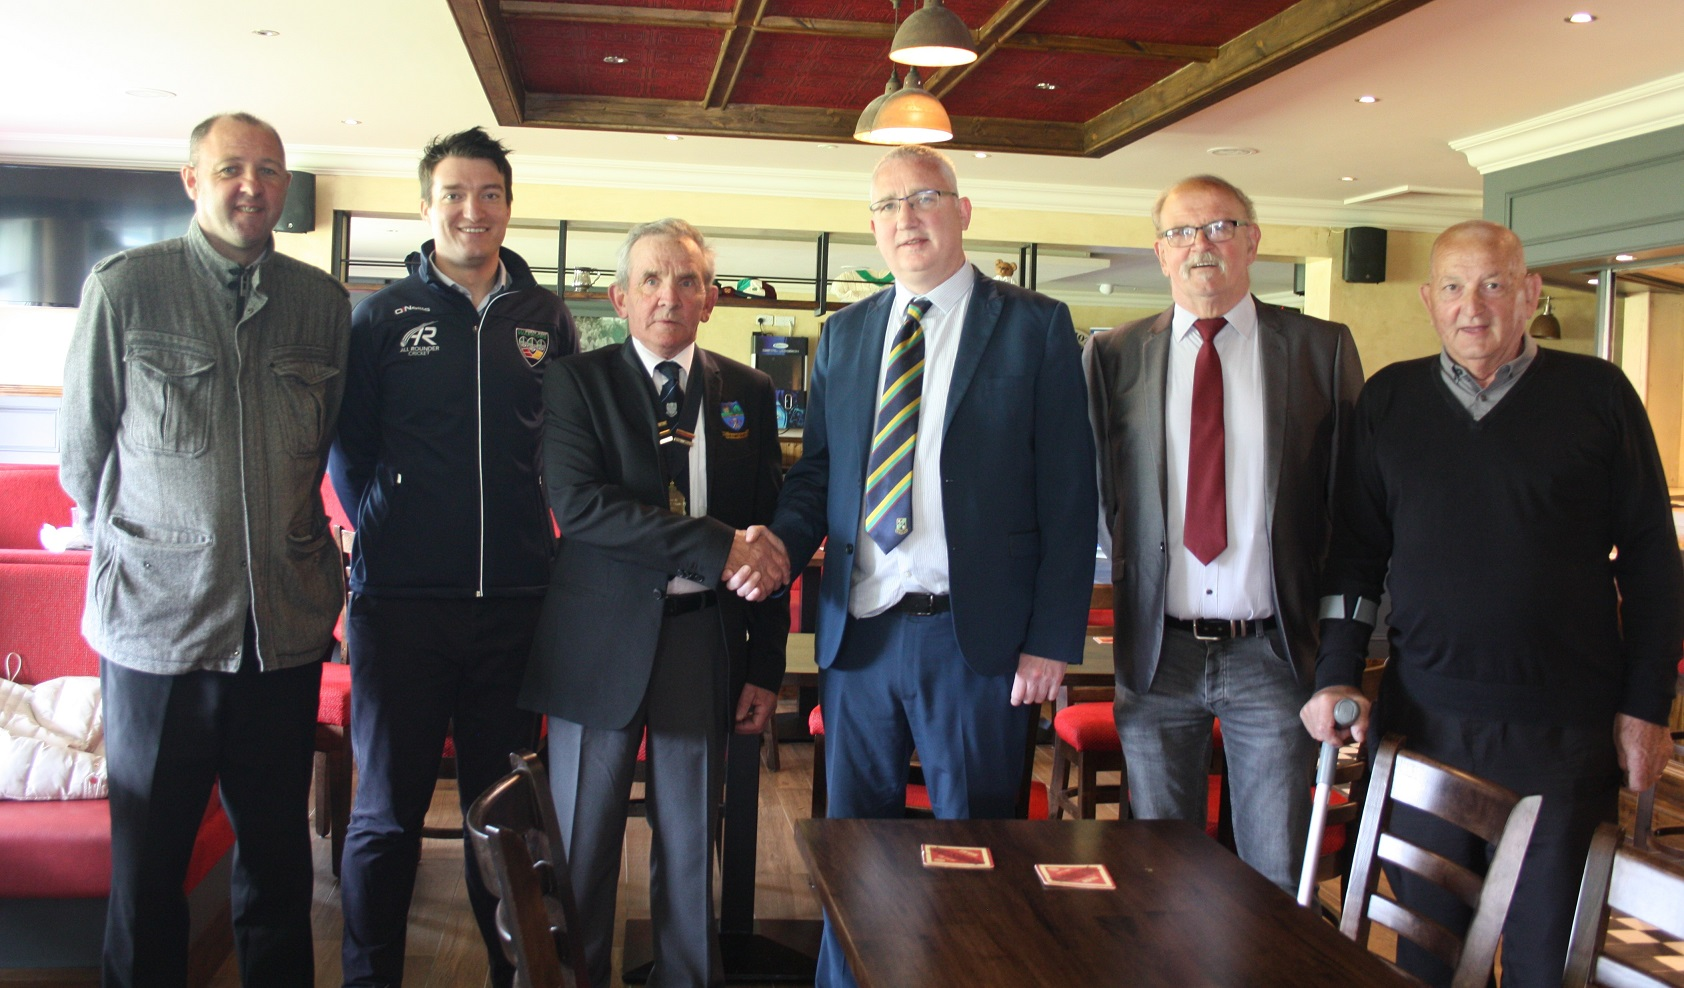 NW Chairman Brian Dougherty and General Manager Peter McCartney congratulates Glendermott President Alan Dougherty and committee members on the official opening of their refurbished clubhouse